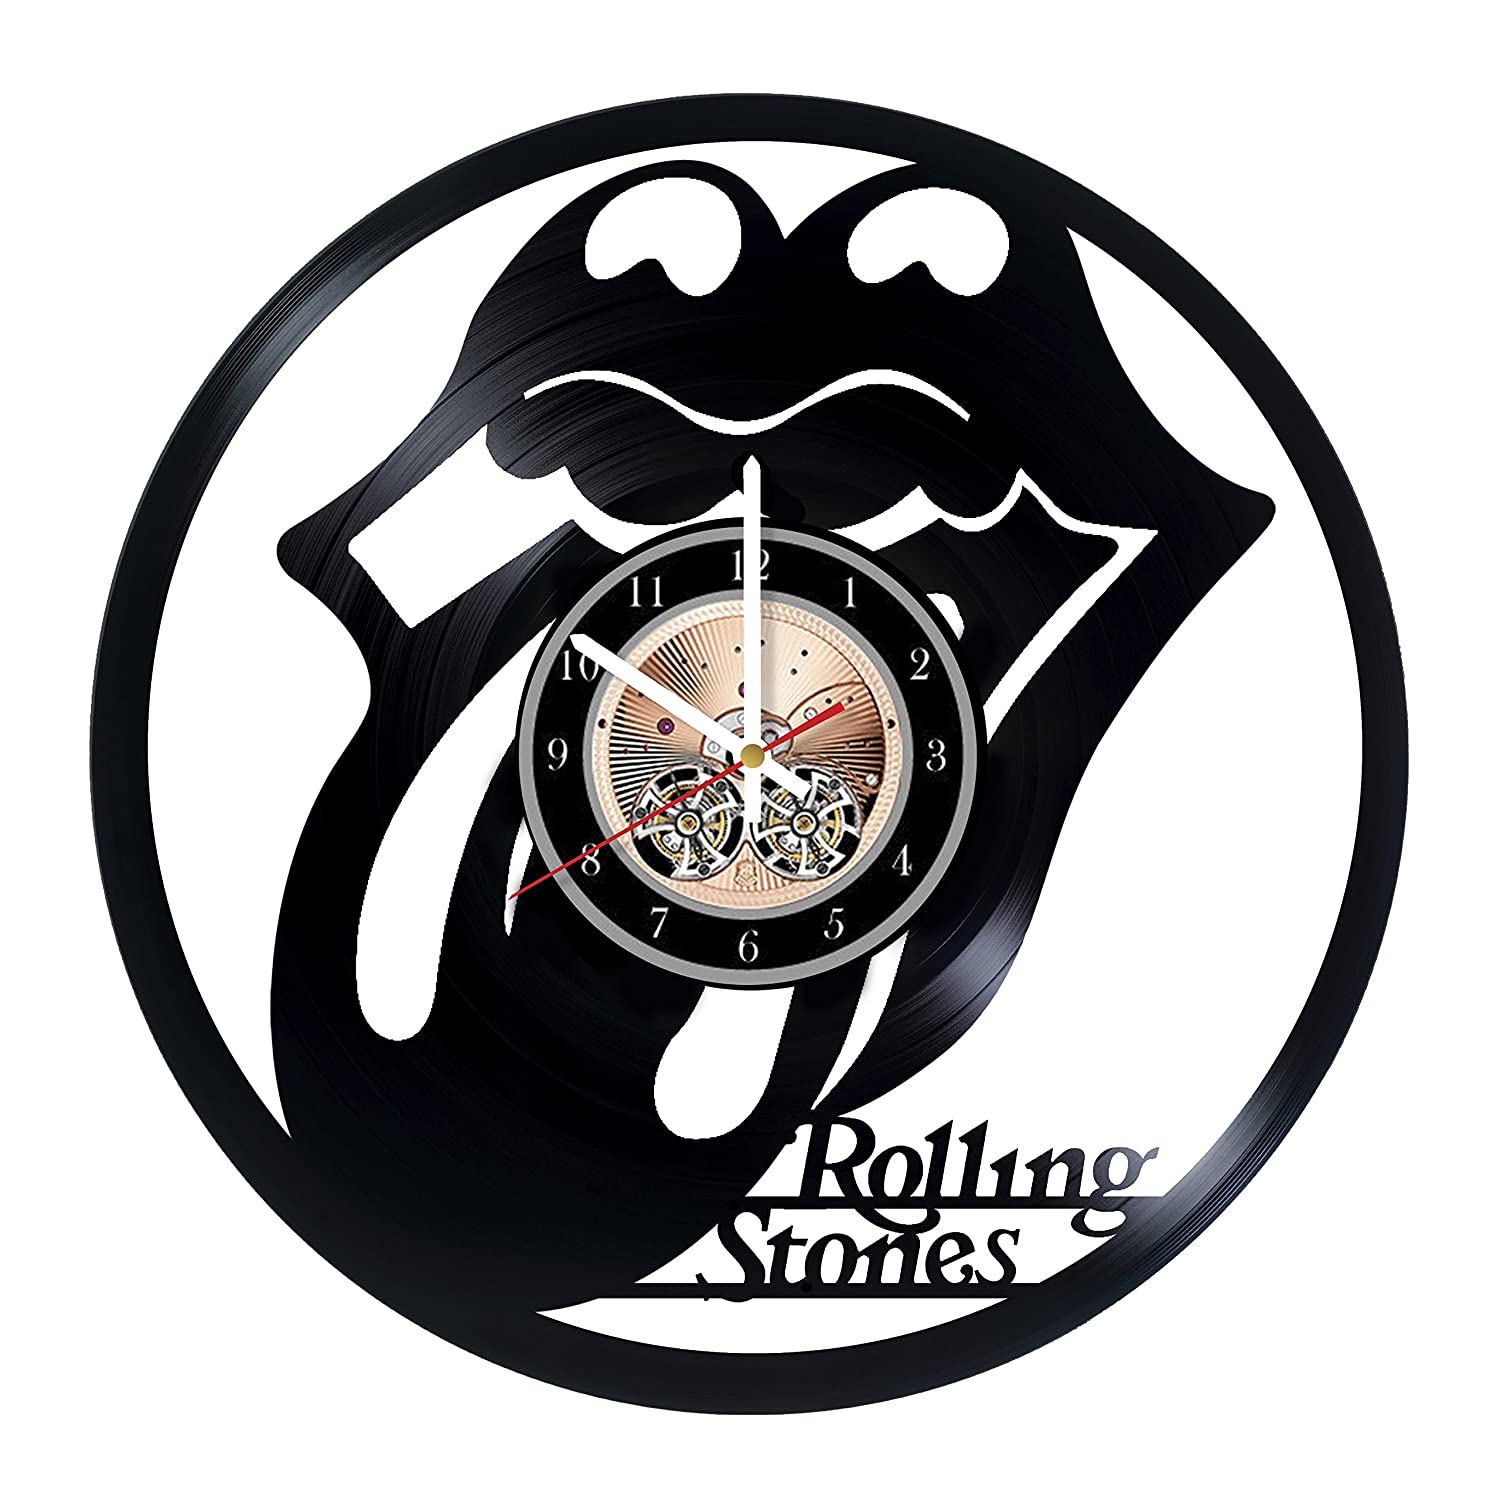 The Rolling Stones HANDMADE Vinyl Record Wall Clock - Get unique bedroom or living room wall decor - Gift ideas for him and her